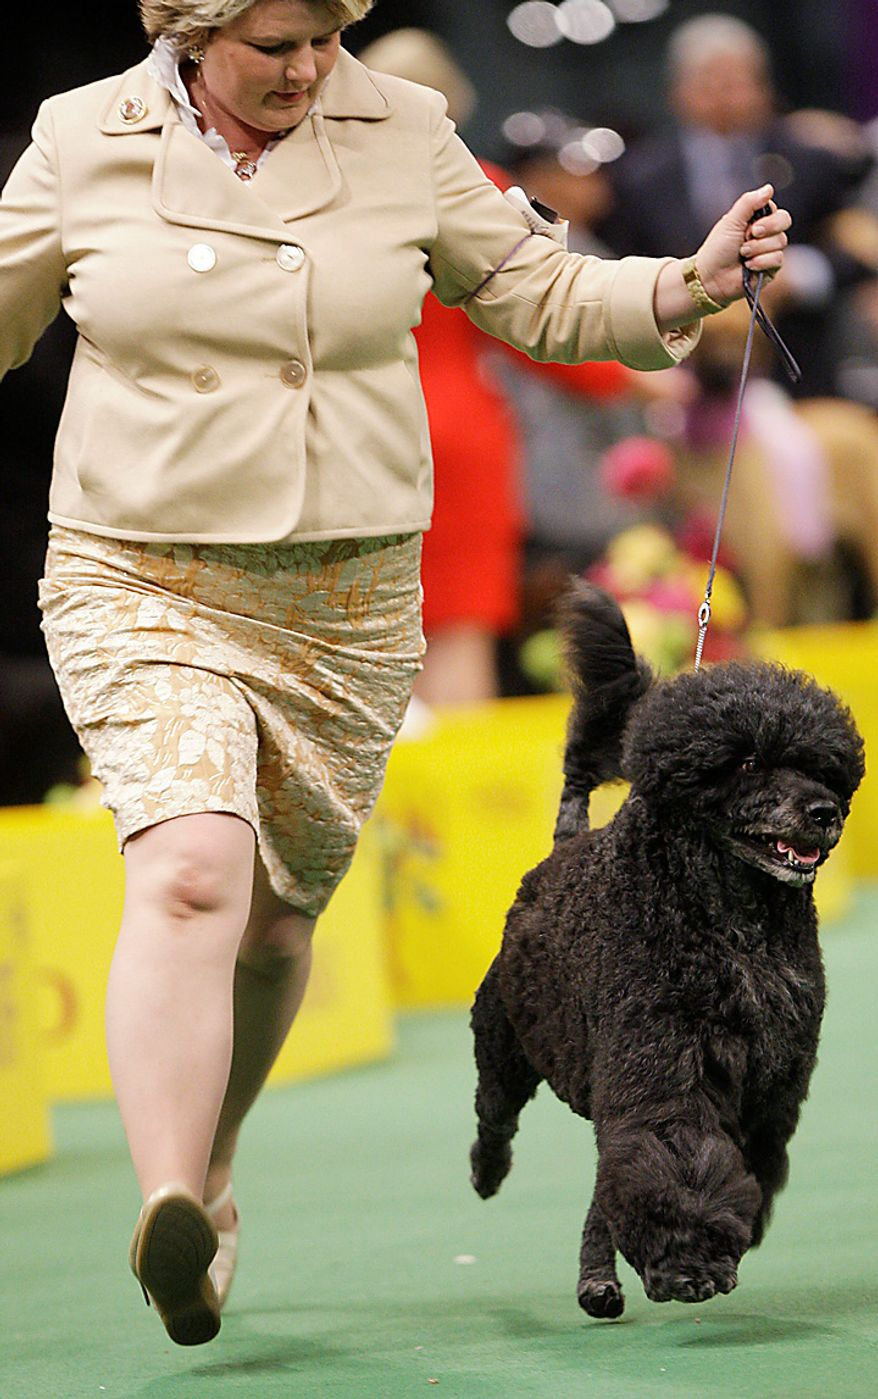 Ladybug, a Portuguese water dog, competes in the ring during the 135th Westminster Kennel Club Dog Show on Tuesday, Feb. 15, 2011, at Madison Square Garden in New York. Ladybug won the working group. (AP Photo/Frank Franklin II)